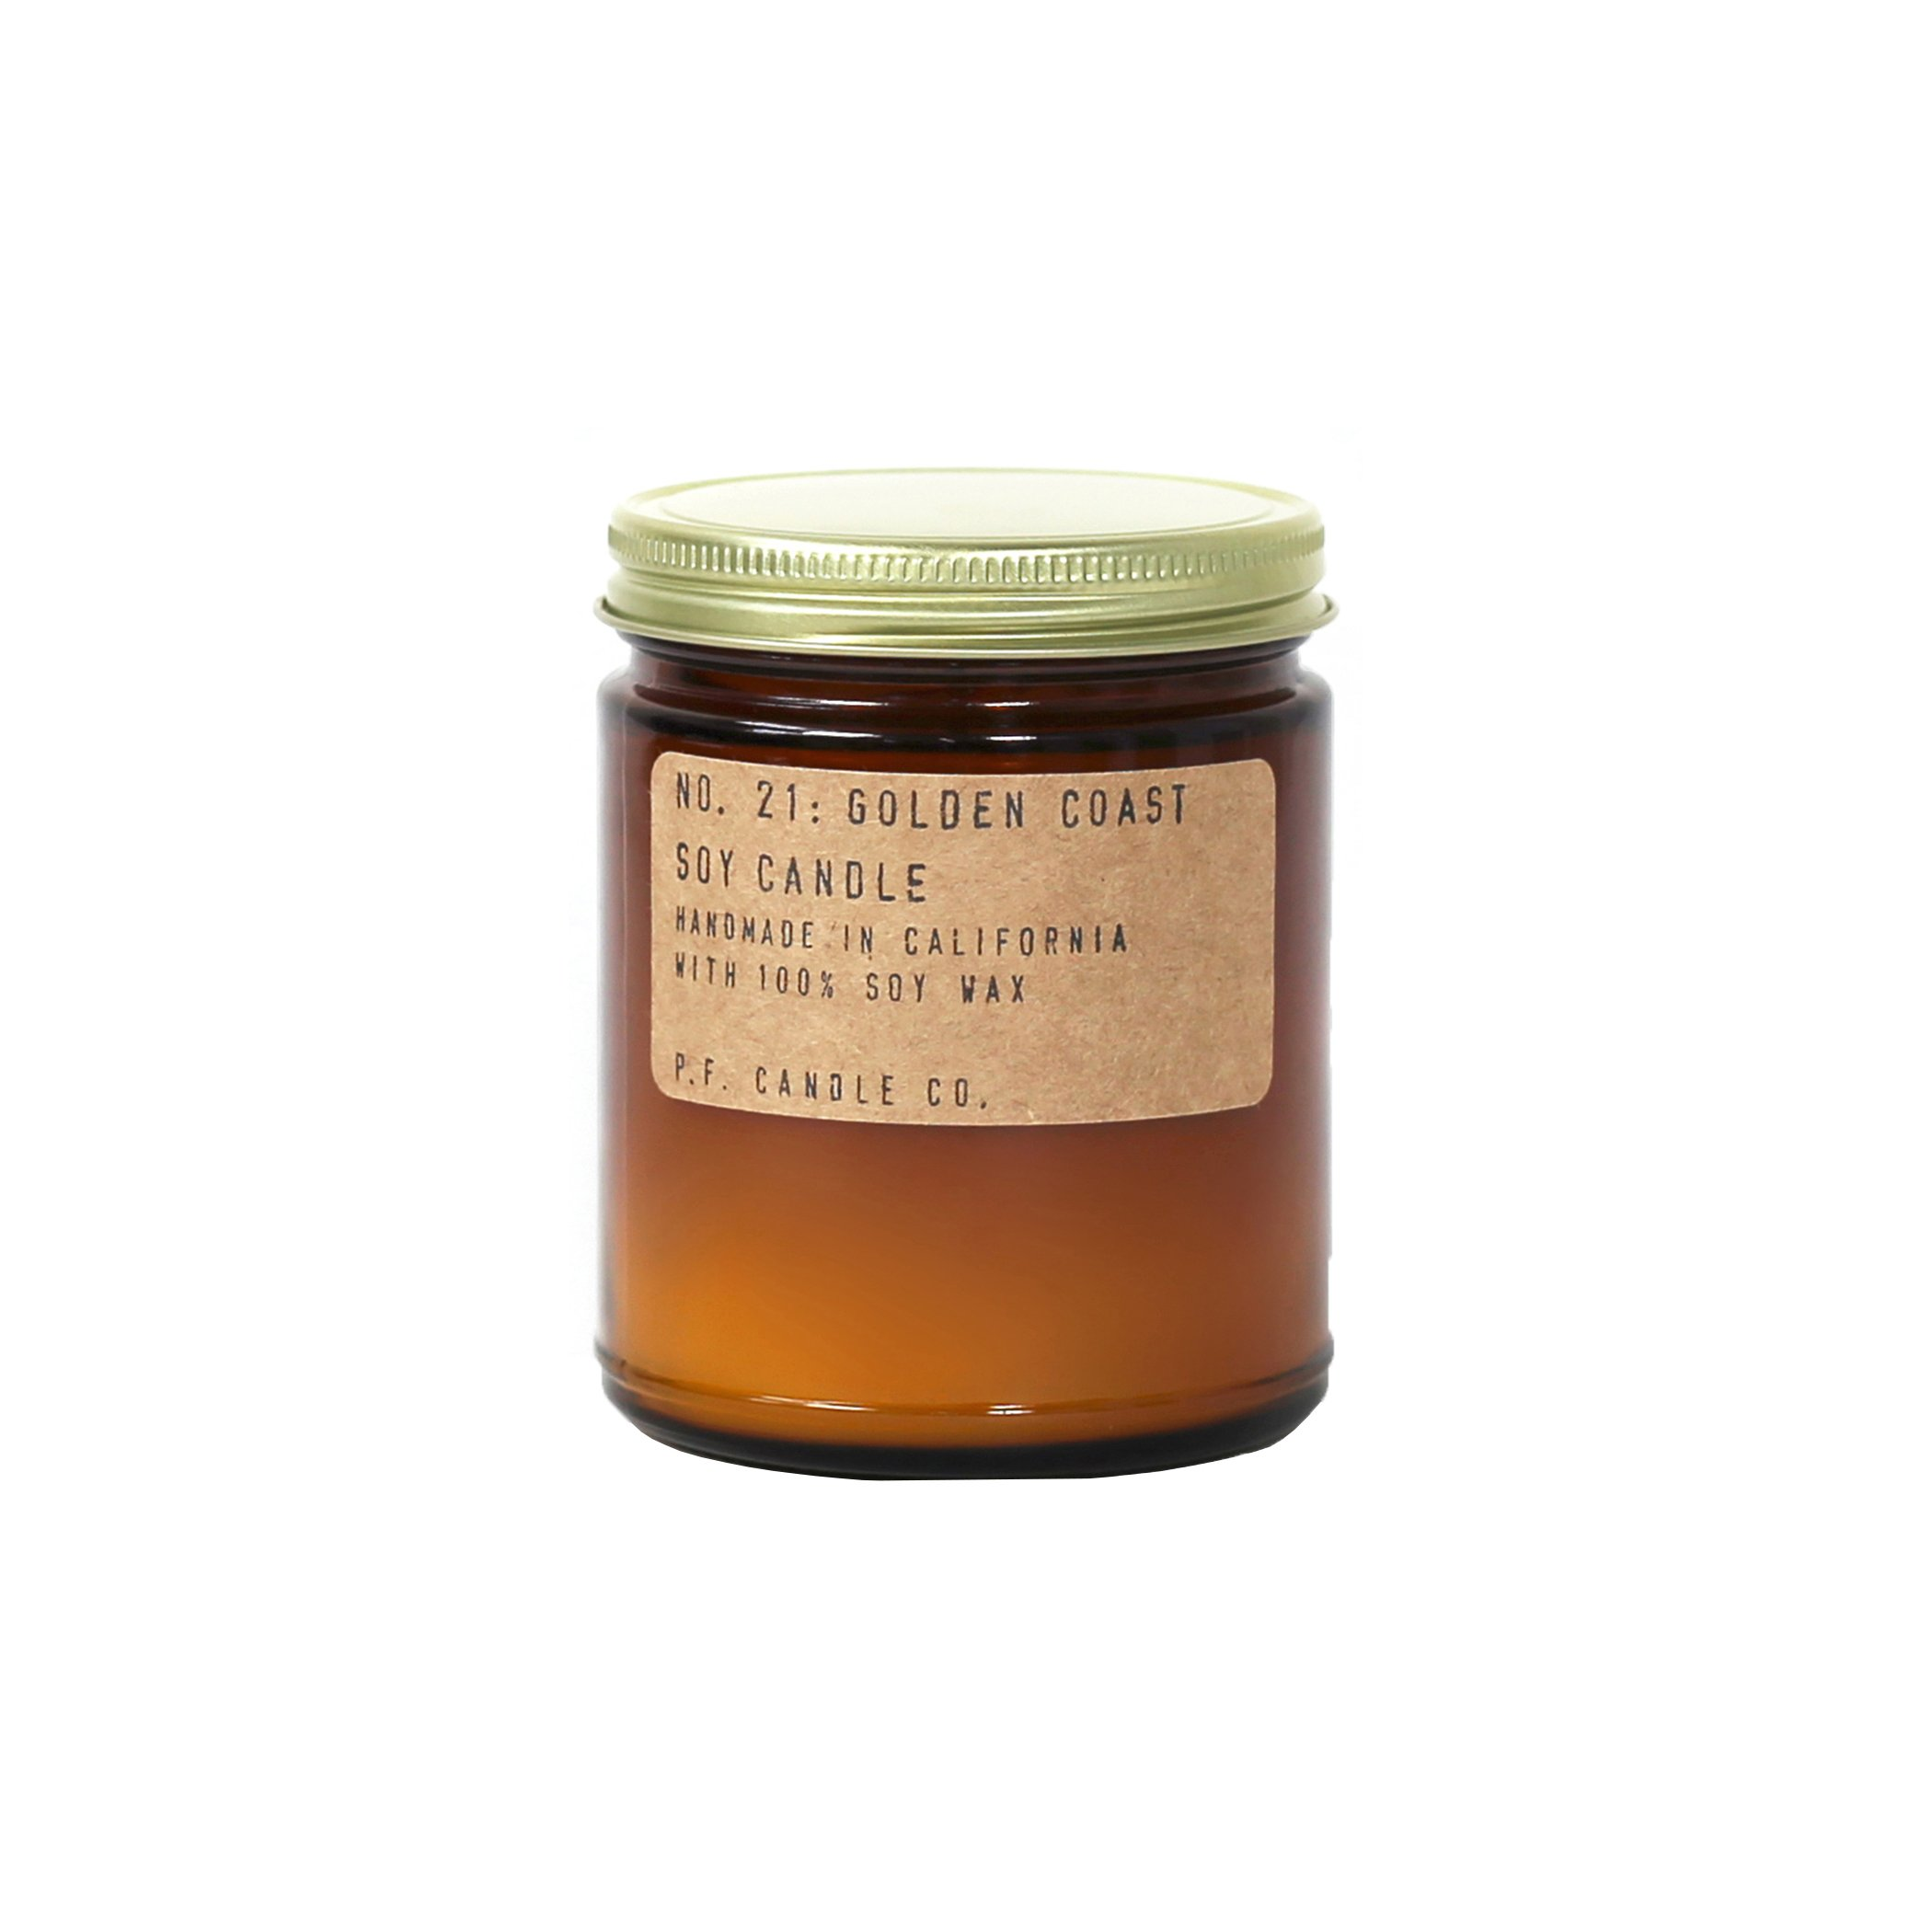 P.F. Candle Co.. - No. 21: Golden Coast Soy Candle (3.5 oz)